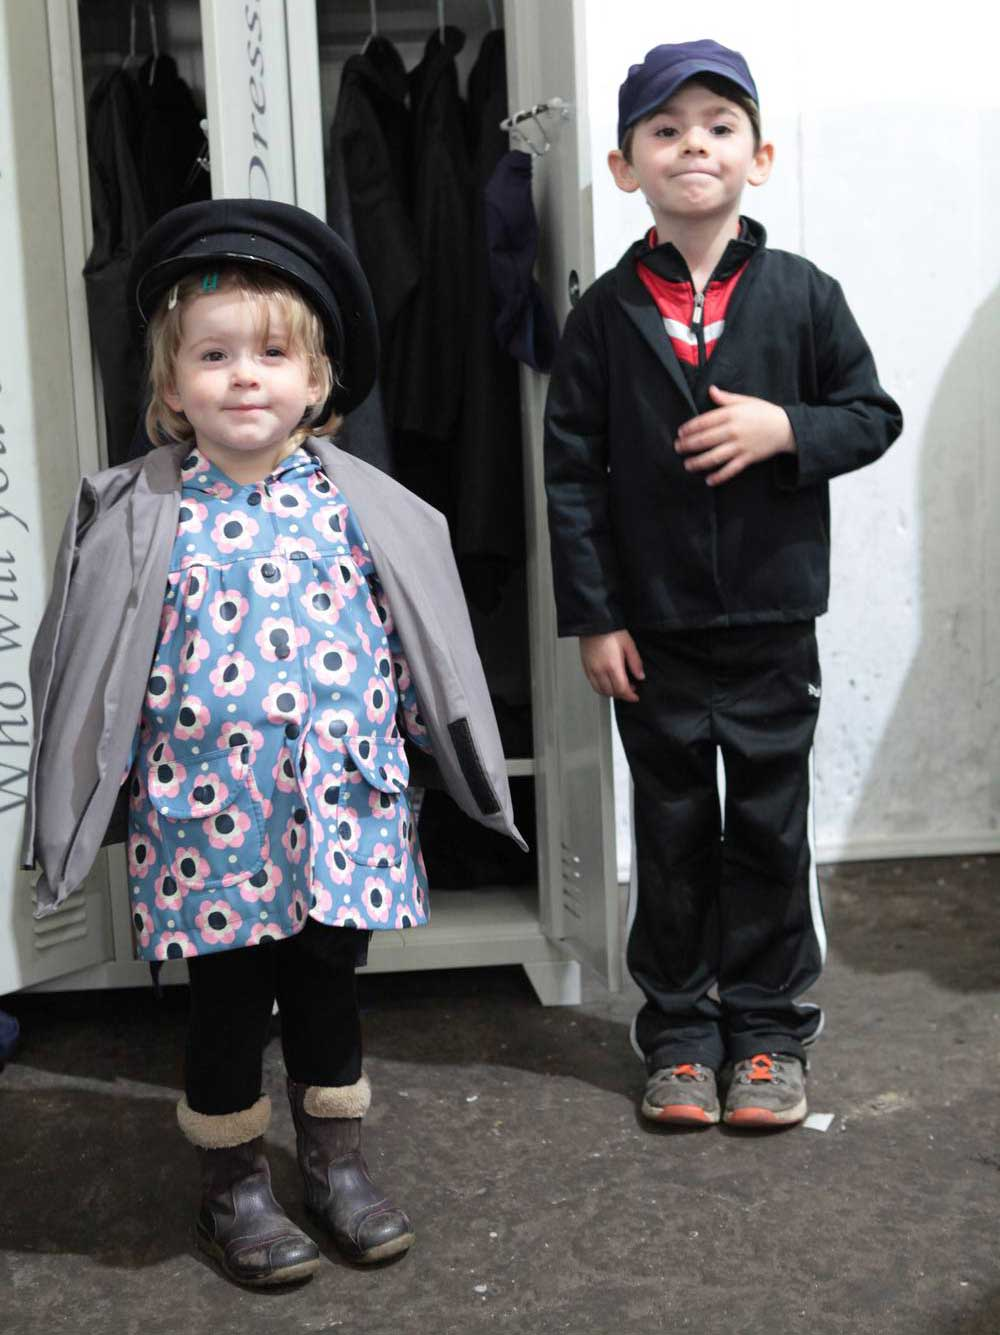 Family days out at Barrow Hill Railway Museum, Chesterfield